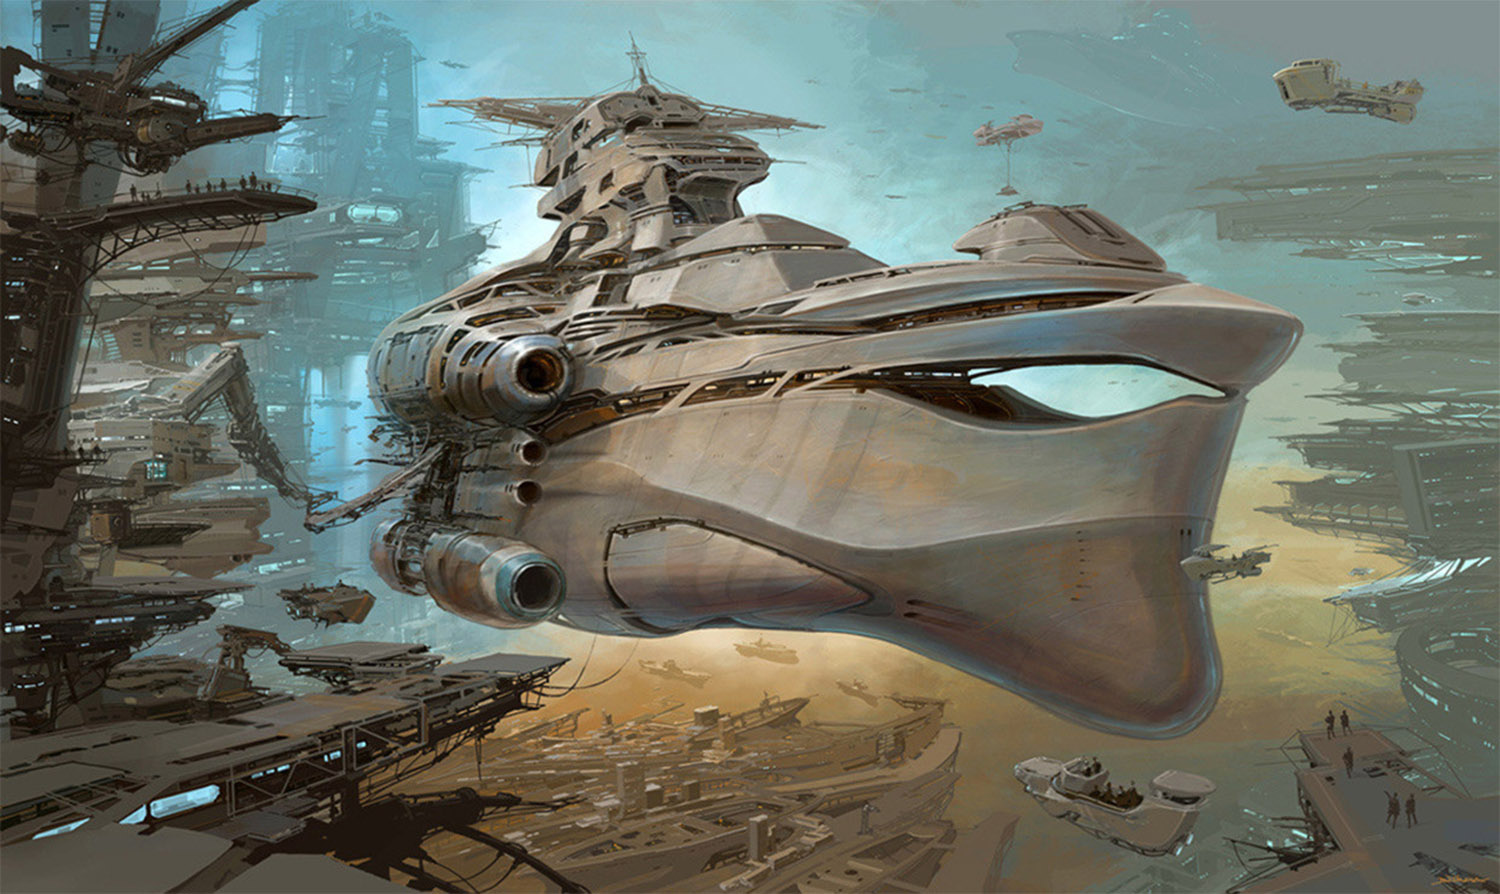 futuristic ship by alejandro burdisio